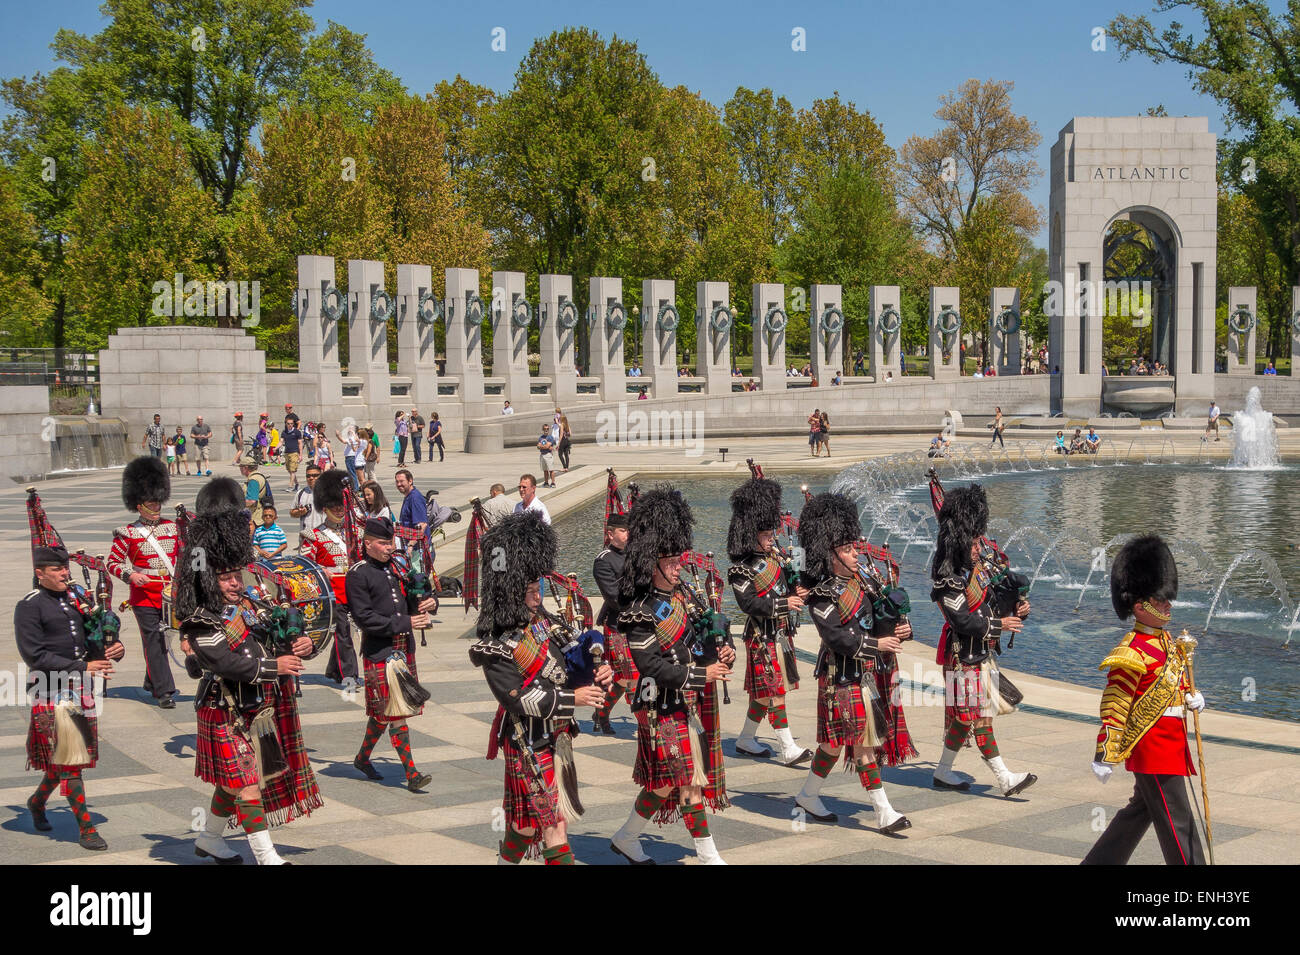 WASHINGTON, DC, USA - British Army's 1st Battalion Scots Guards Pipes and Drums marching at World War Two Memorial. - Stock Image